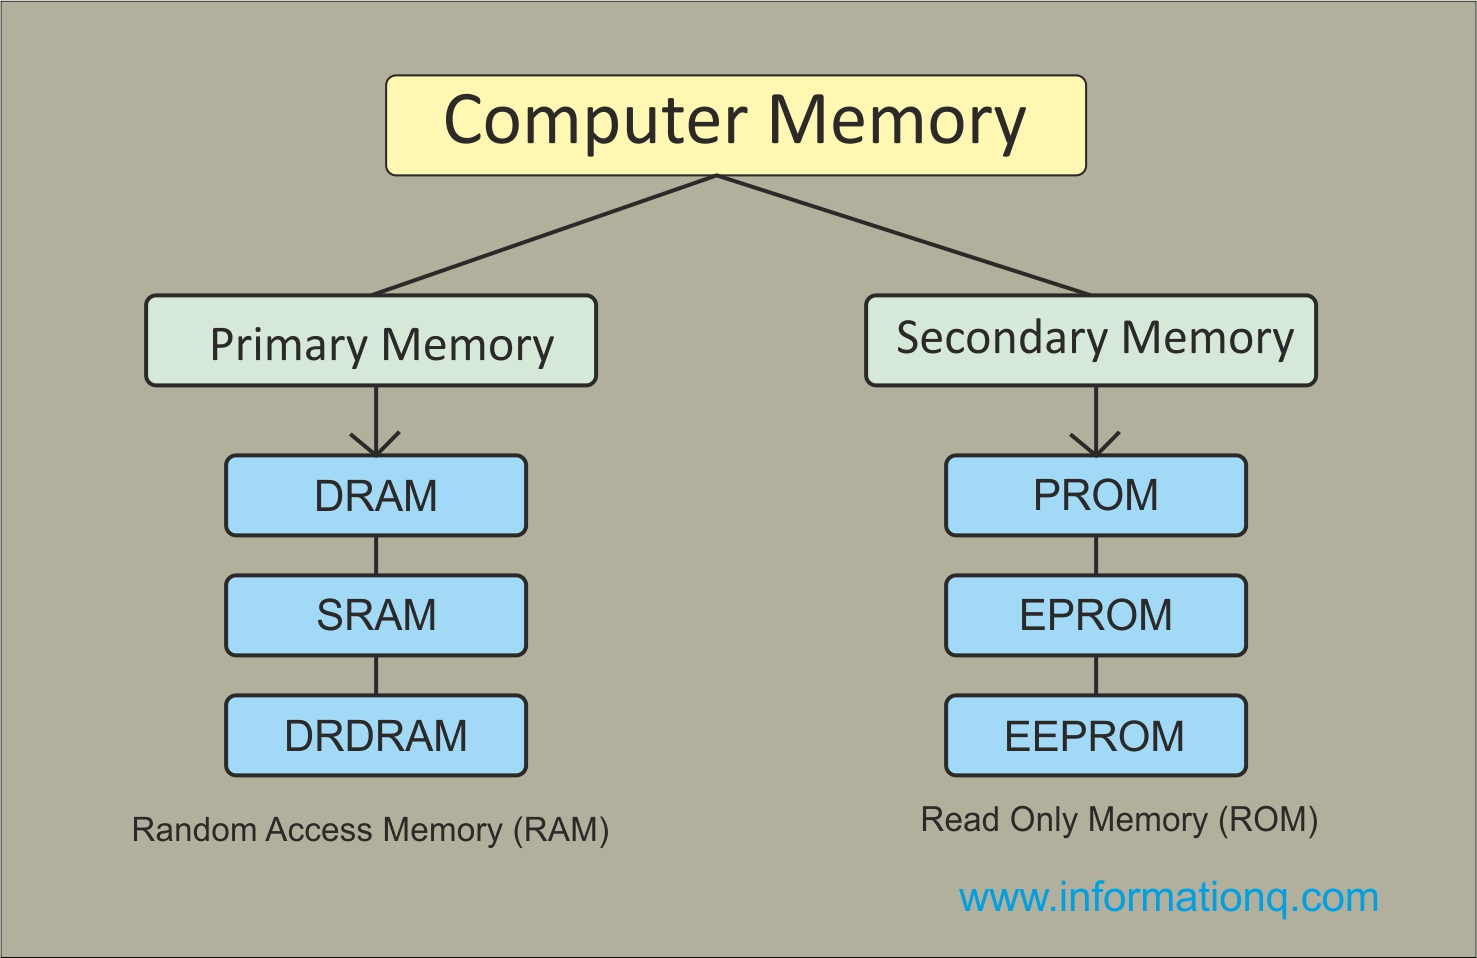 hight resolution of two types computer memory primary and secondary memory inforamtionq com